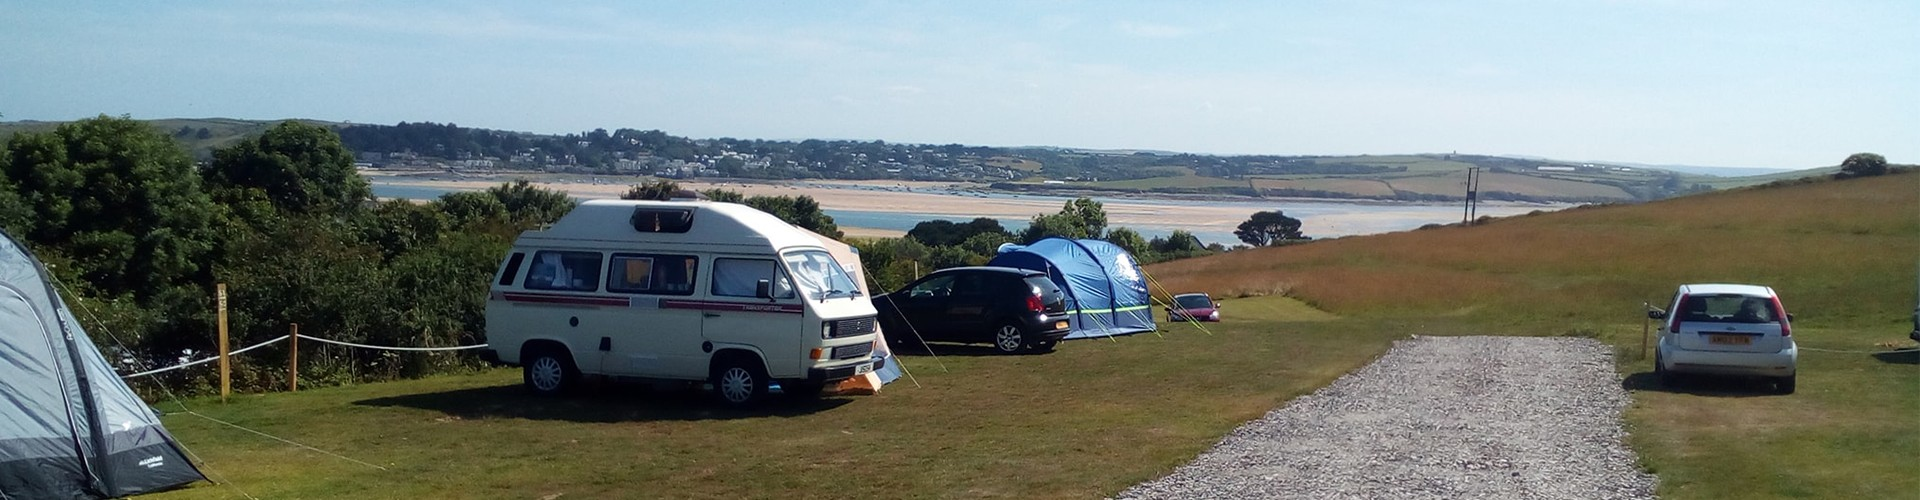 View of Camel Trail from Dennis Cove Campsite